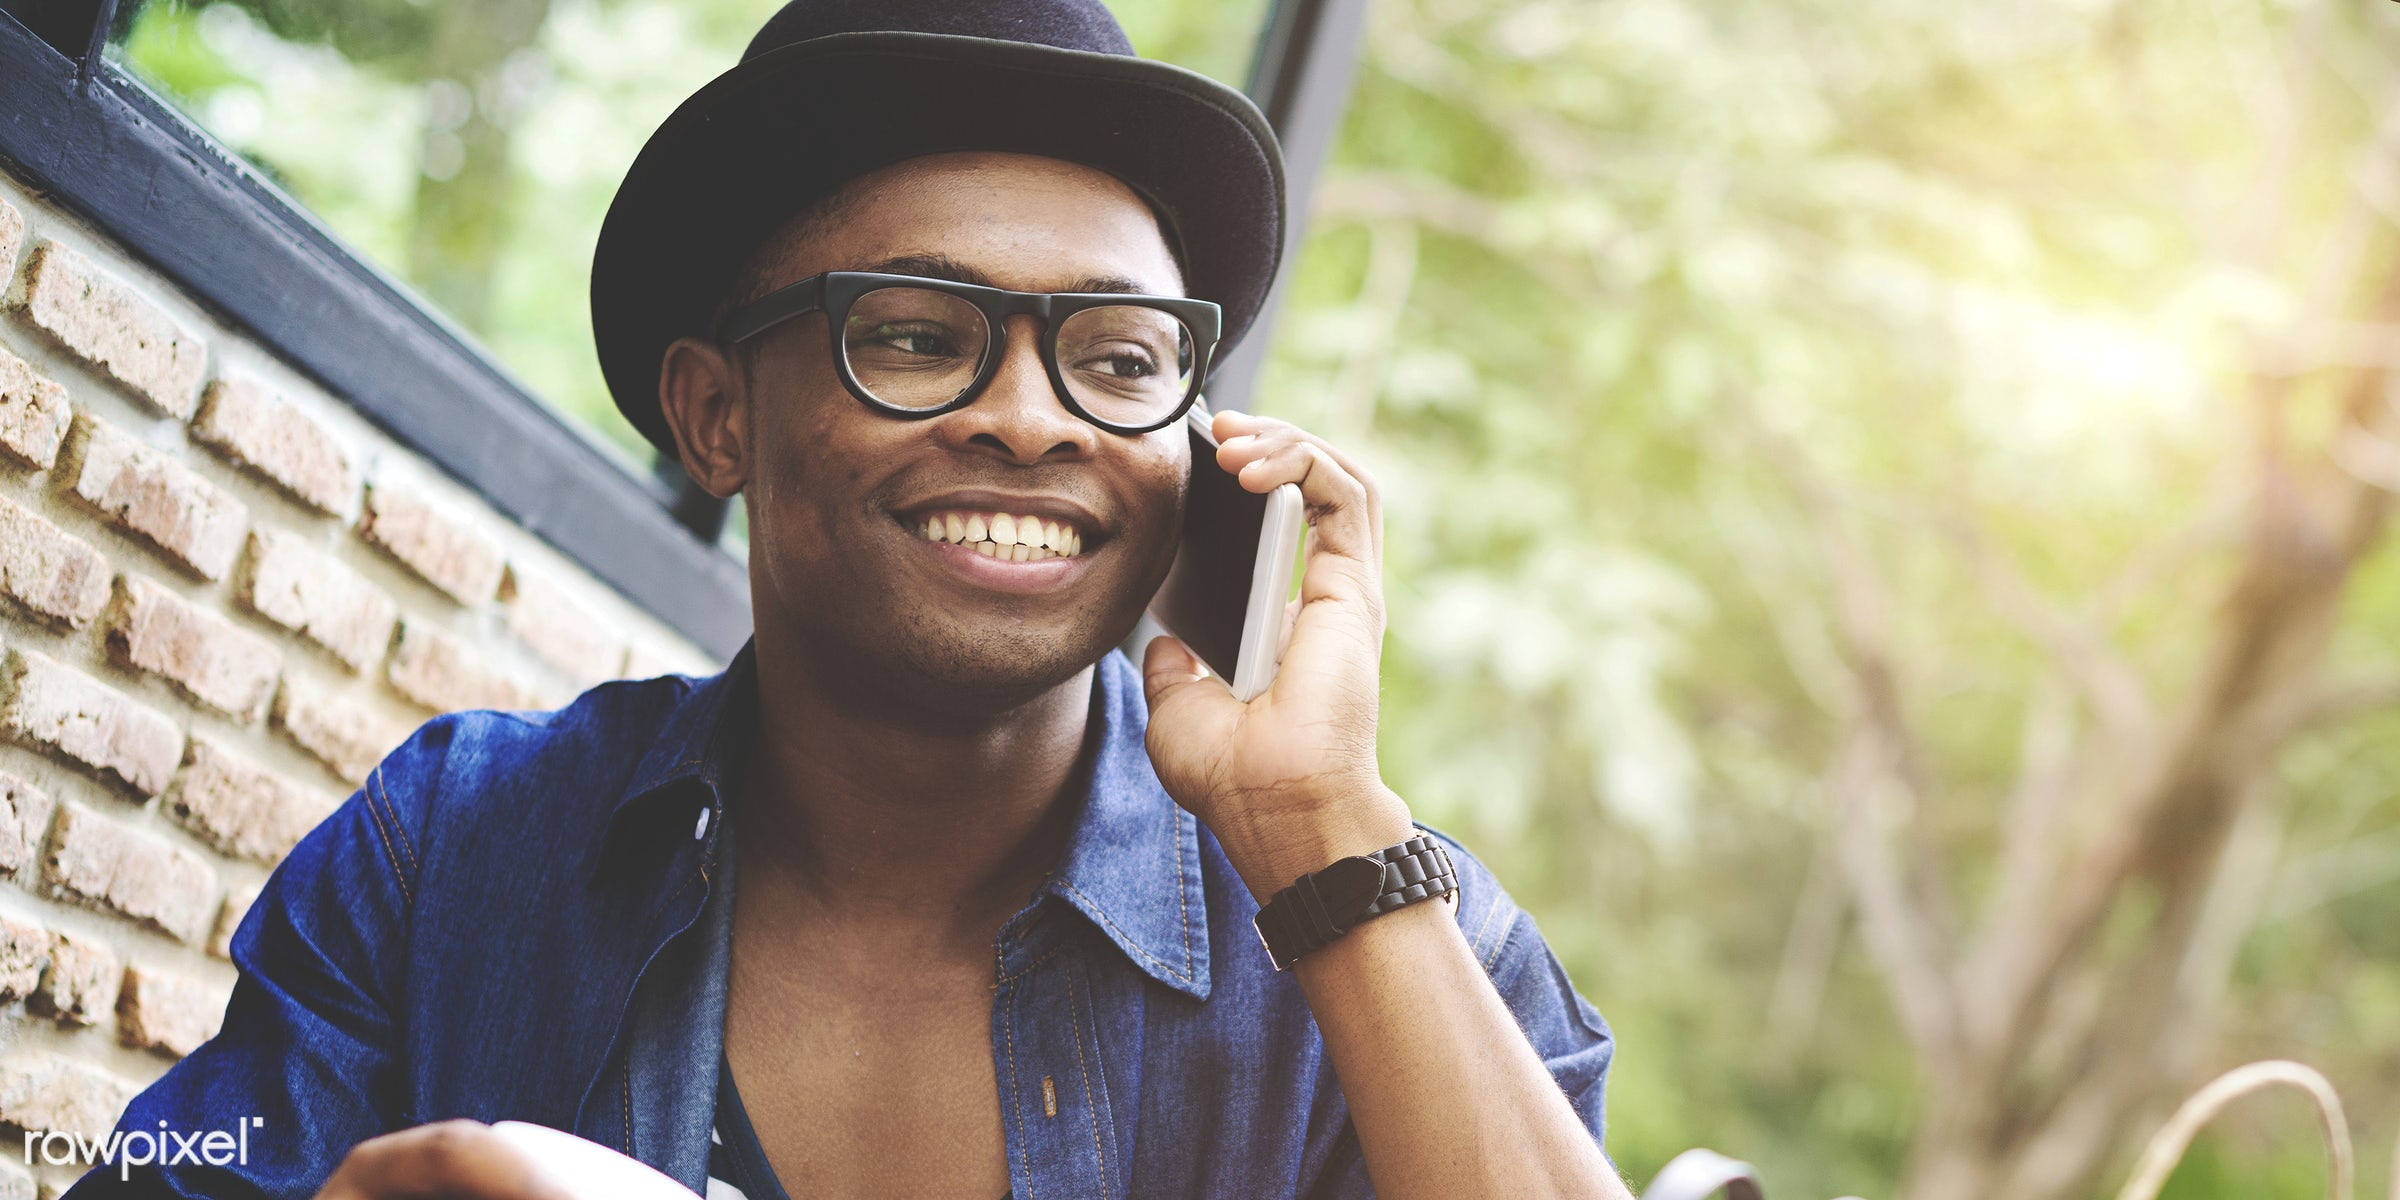 on the phone, smiling, happy, fashion, outdoor cafe, african, smile, happiness, enjoyment, calling, call